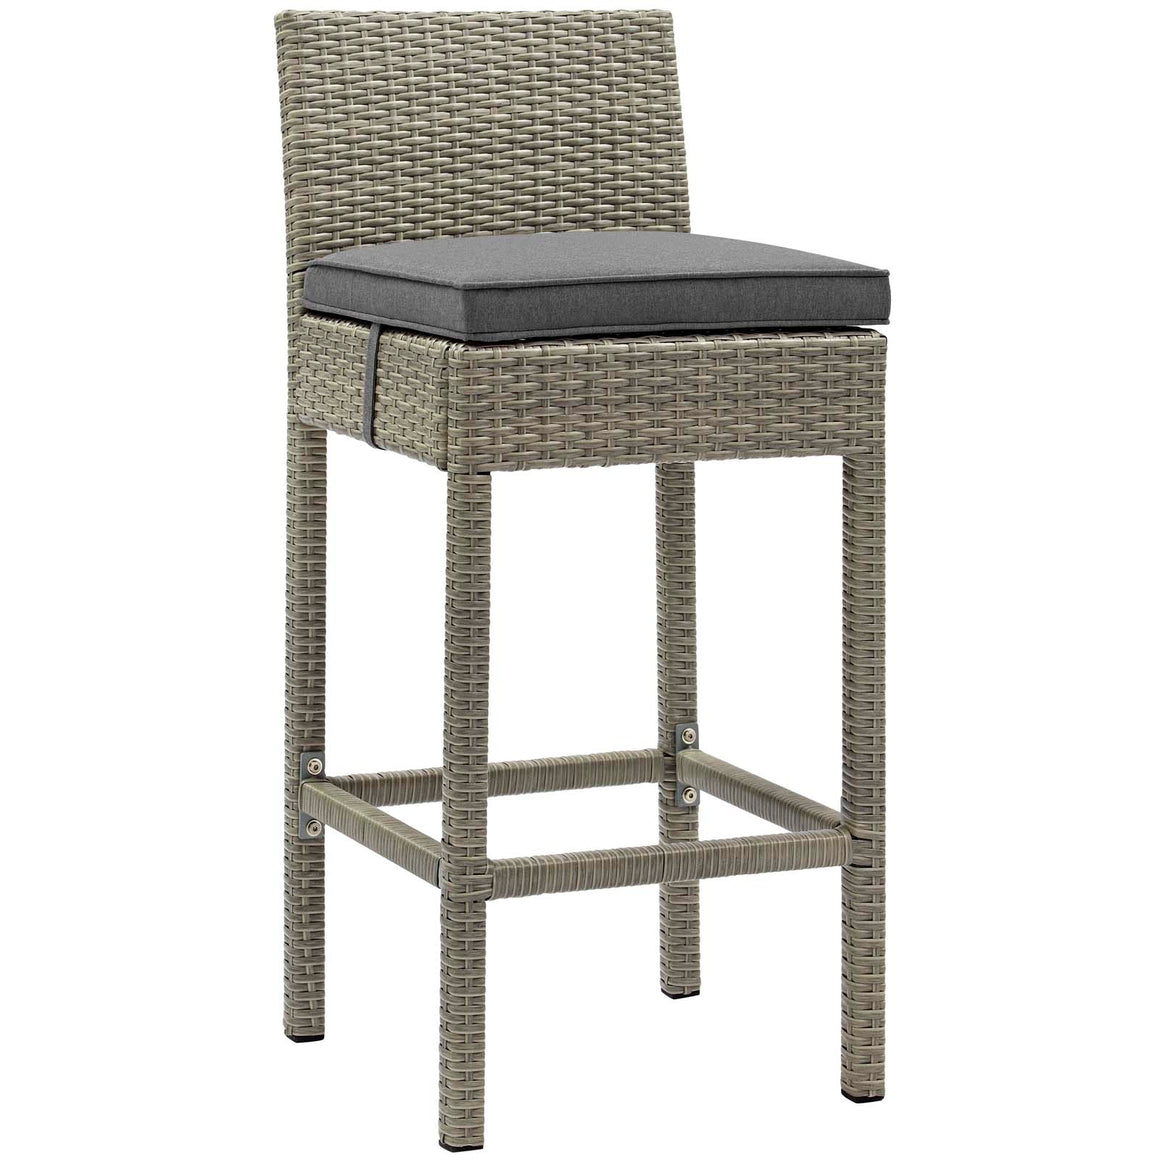 CONDUIT OUTDOOR PATIO WICKER RATTAN BAR STOOL IN LIGHT GRAY